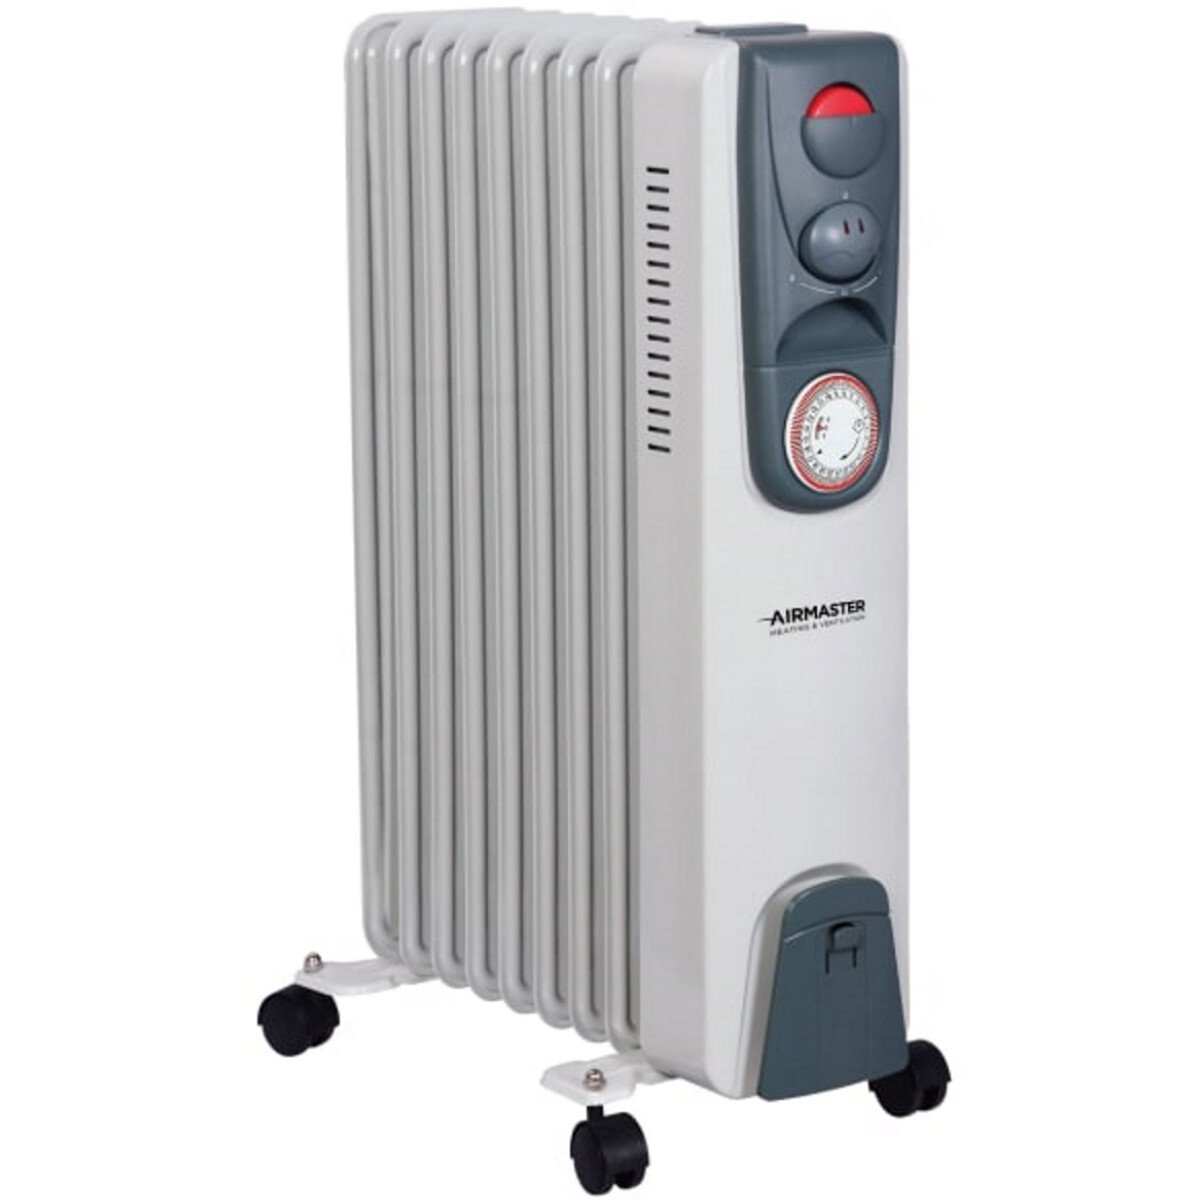 Airmaster CR2T Oil Filled Radiator 2.0kW AIRCR2T